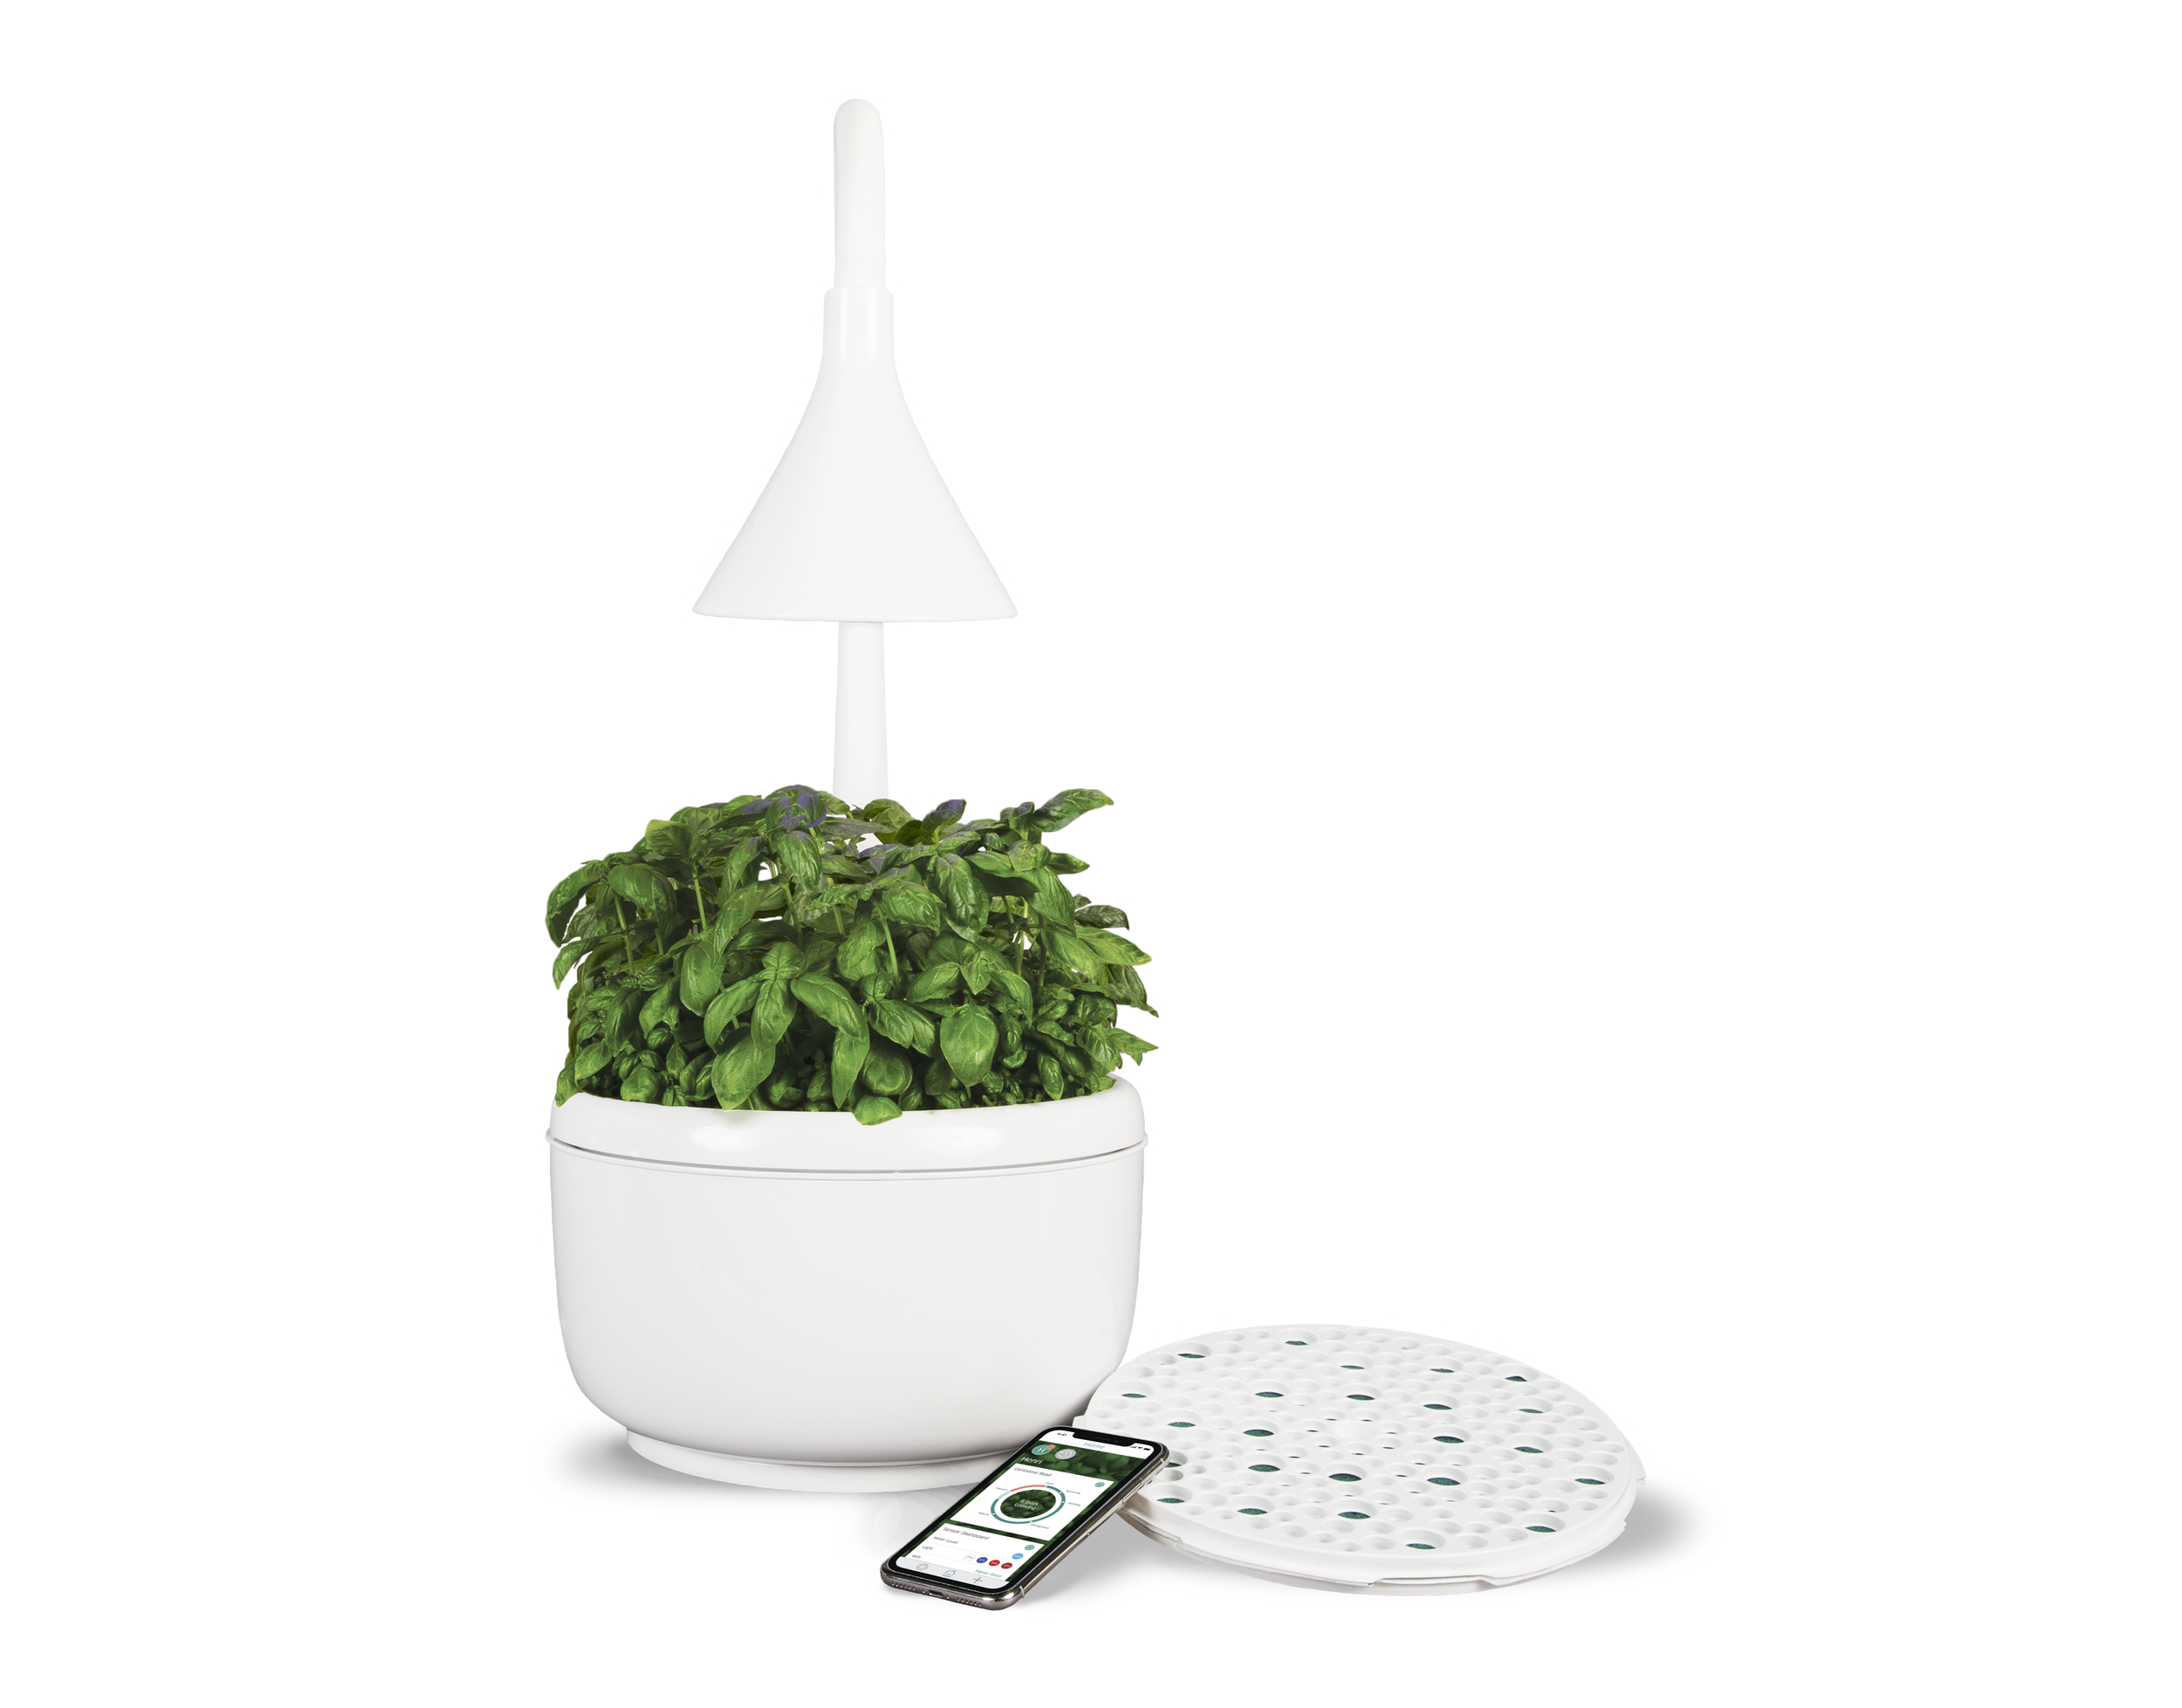 SproutsIO - Product2_landscape.png